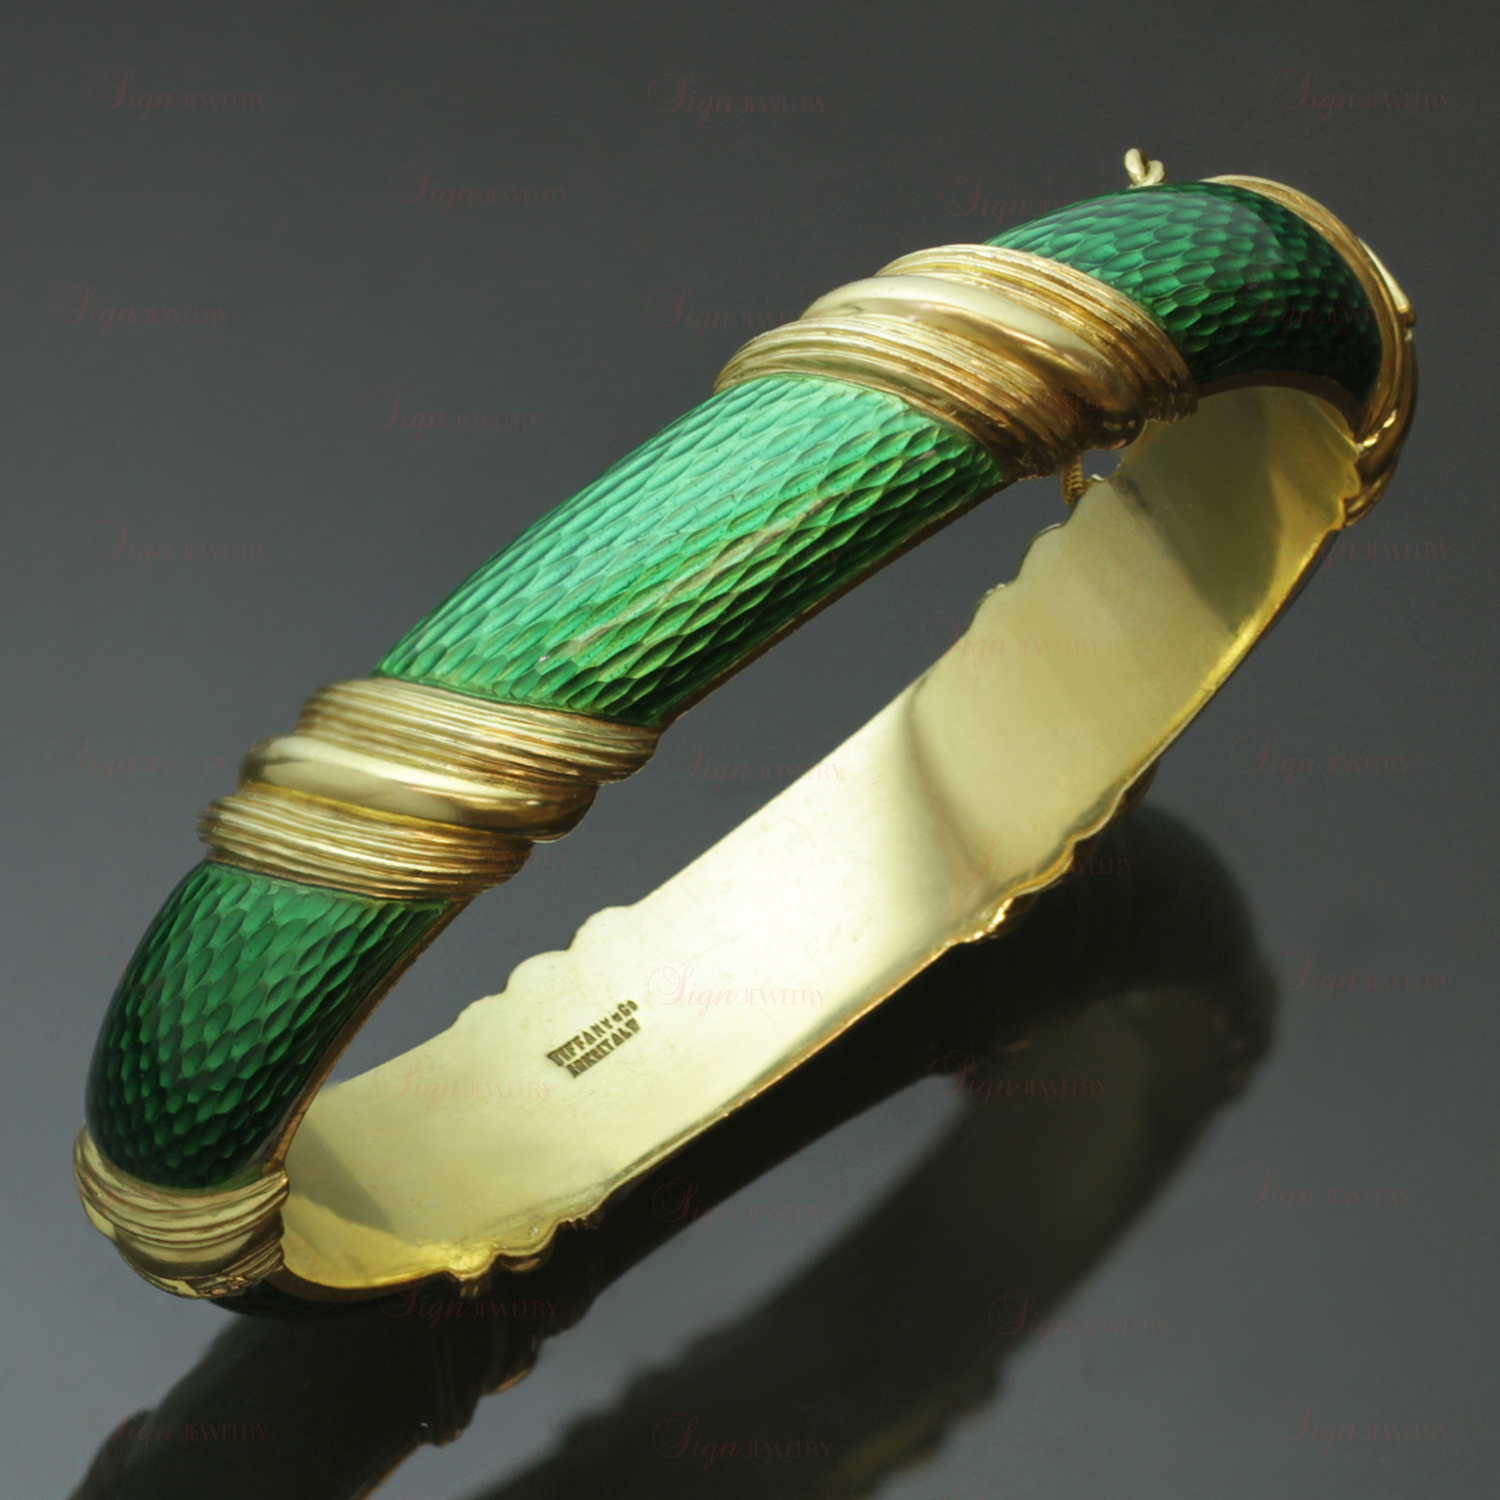 TIFFANY & CO. 18k Yellow Gold Green Enamel Striped Bangle Bracelet